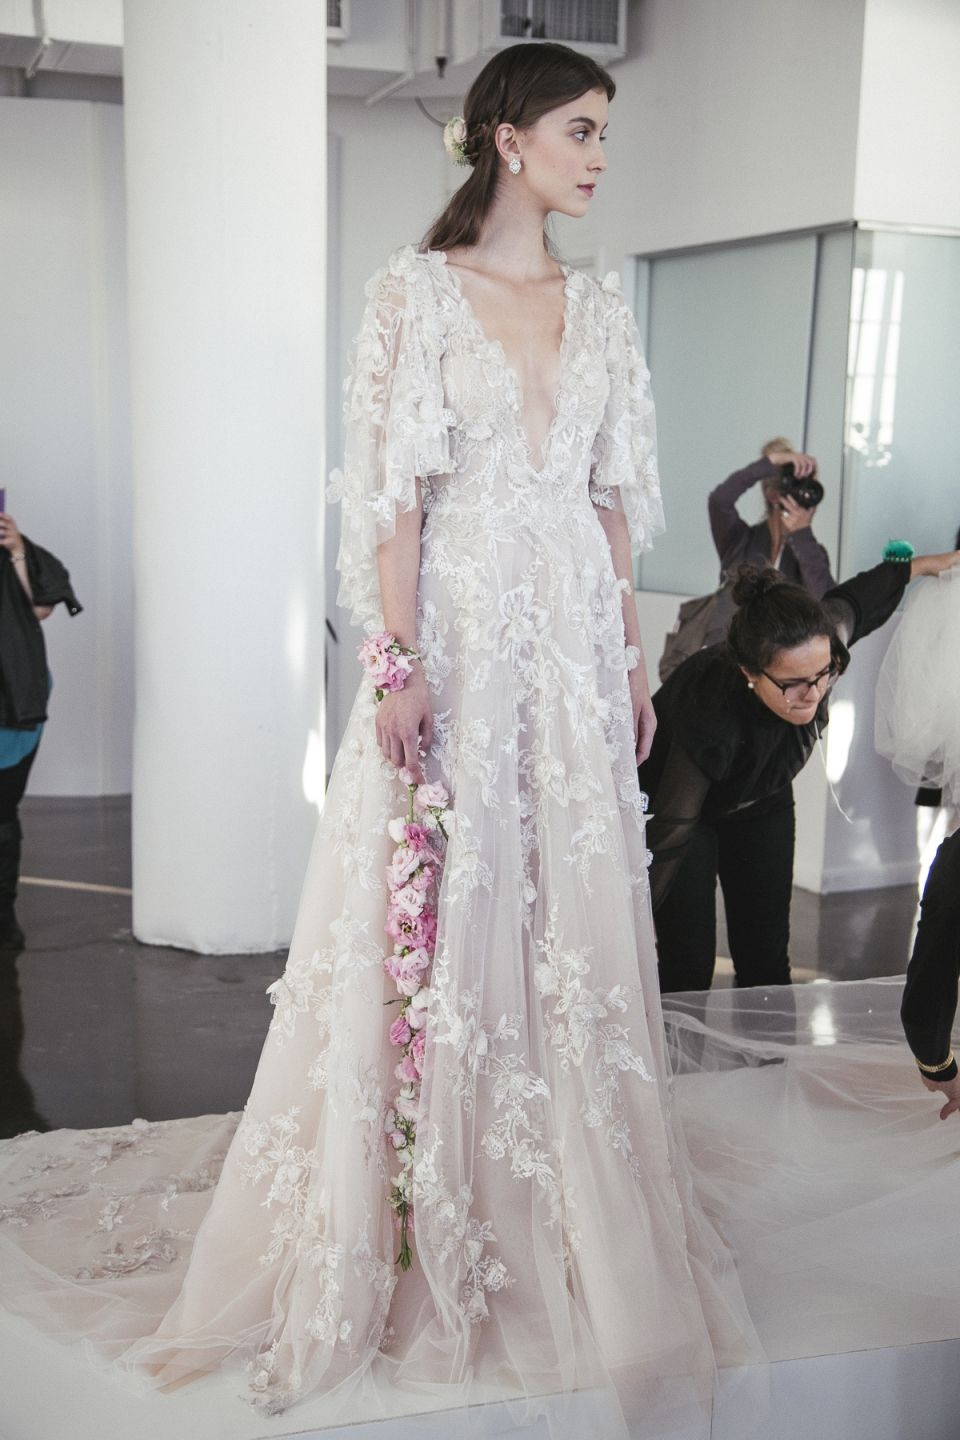 83eeea8917d Ethereal Gowns / Backstage / Marchesa Fall 2017 Bridal / Photo The LANE